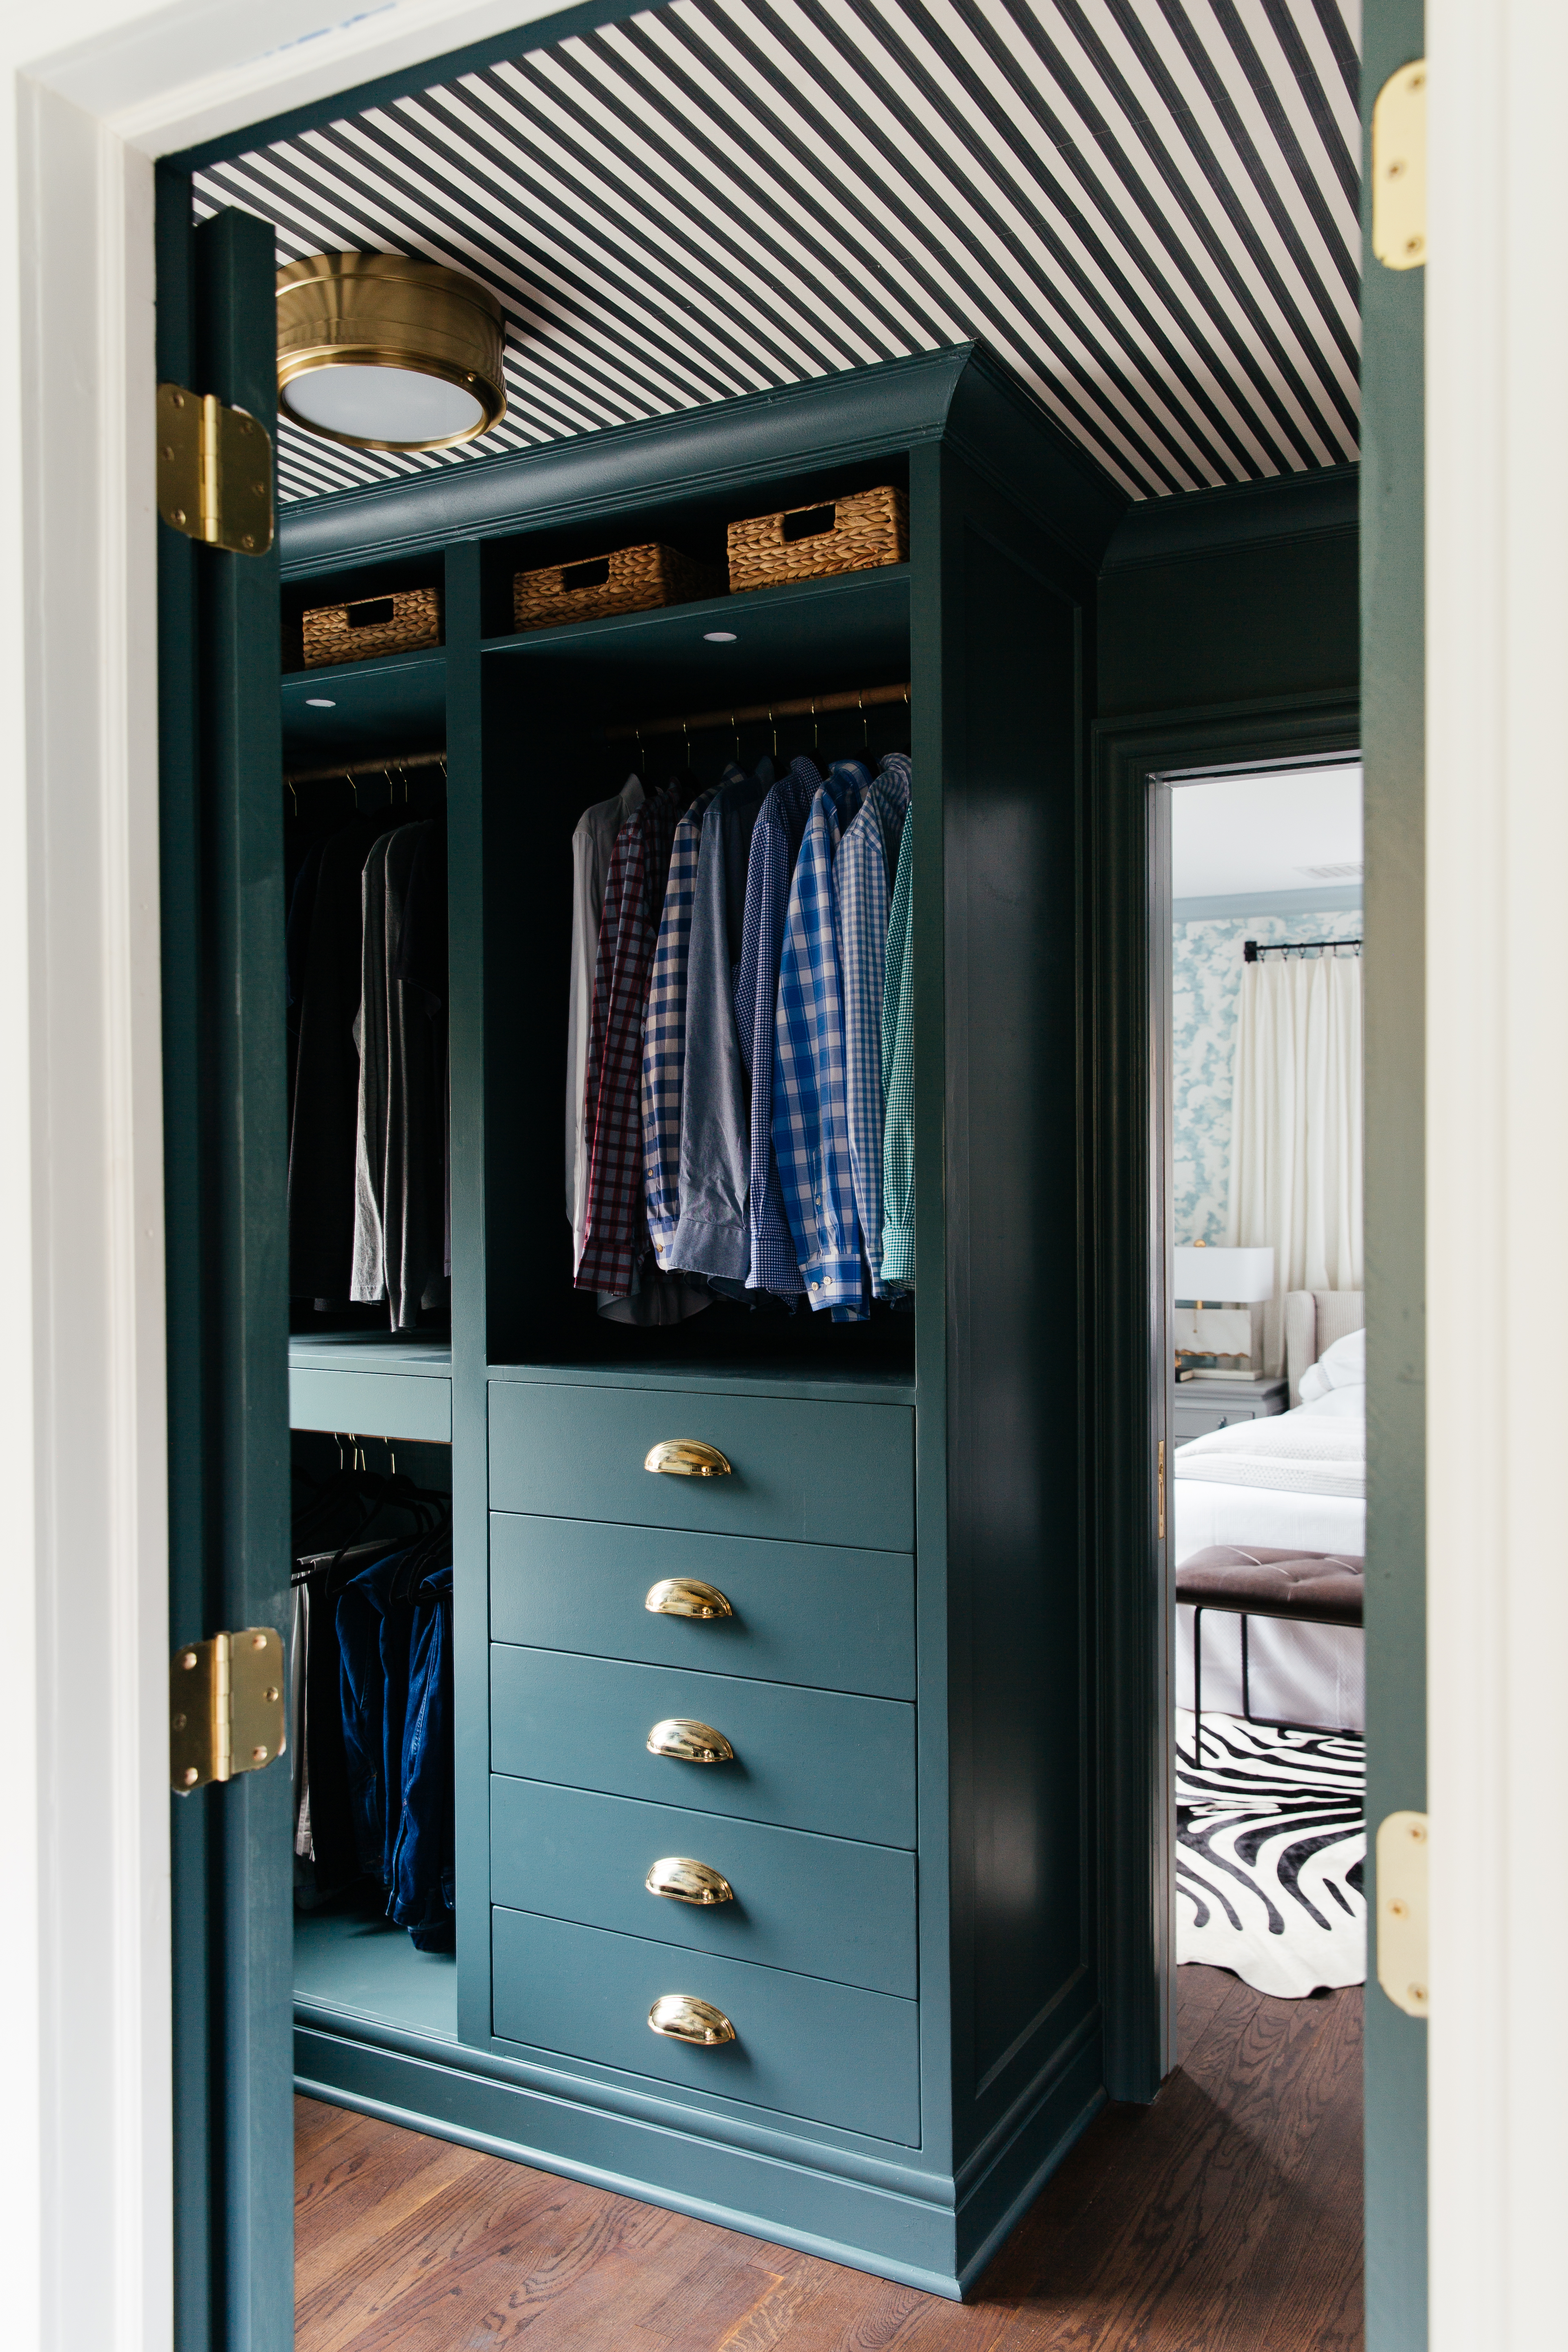 Ikea Wardrobe Leaning To One Side One Room Challenge Archives Erin Kestenbaum